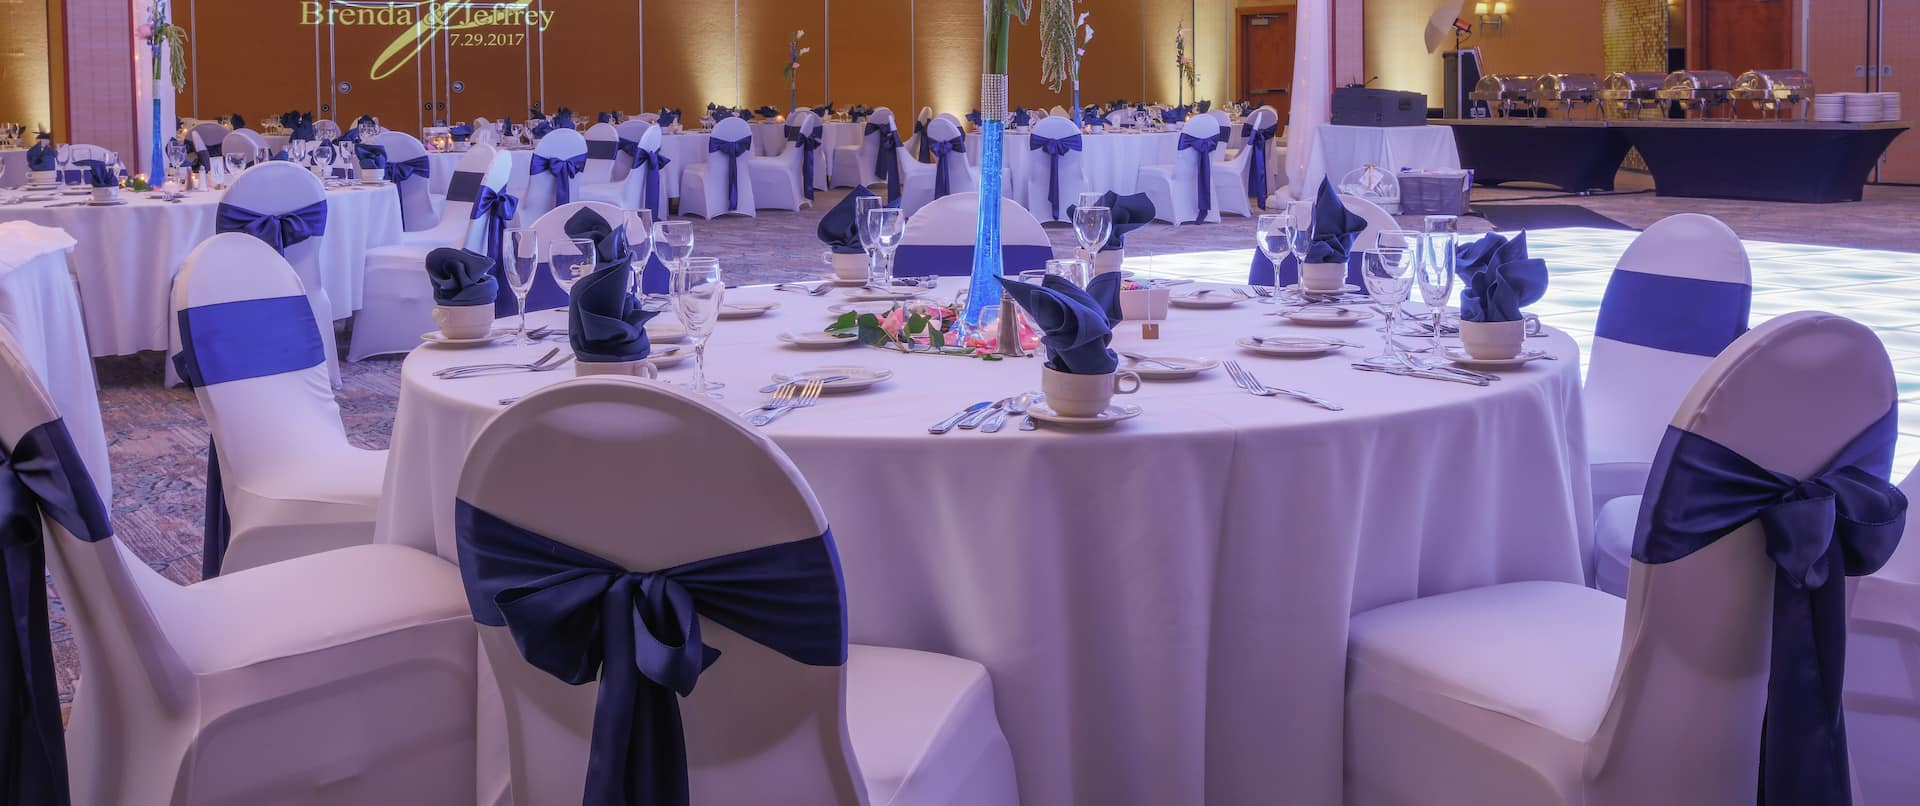 Meeting and Event Space Decorated for Wedding and Reception